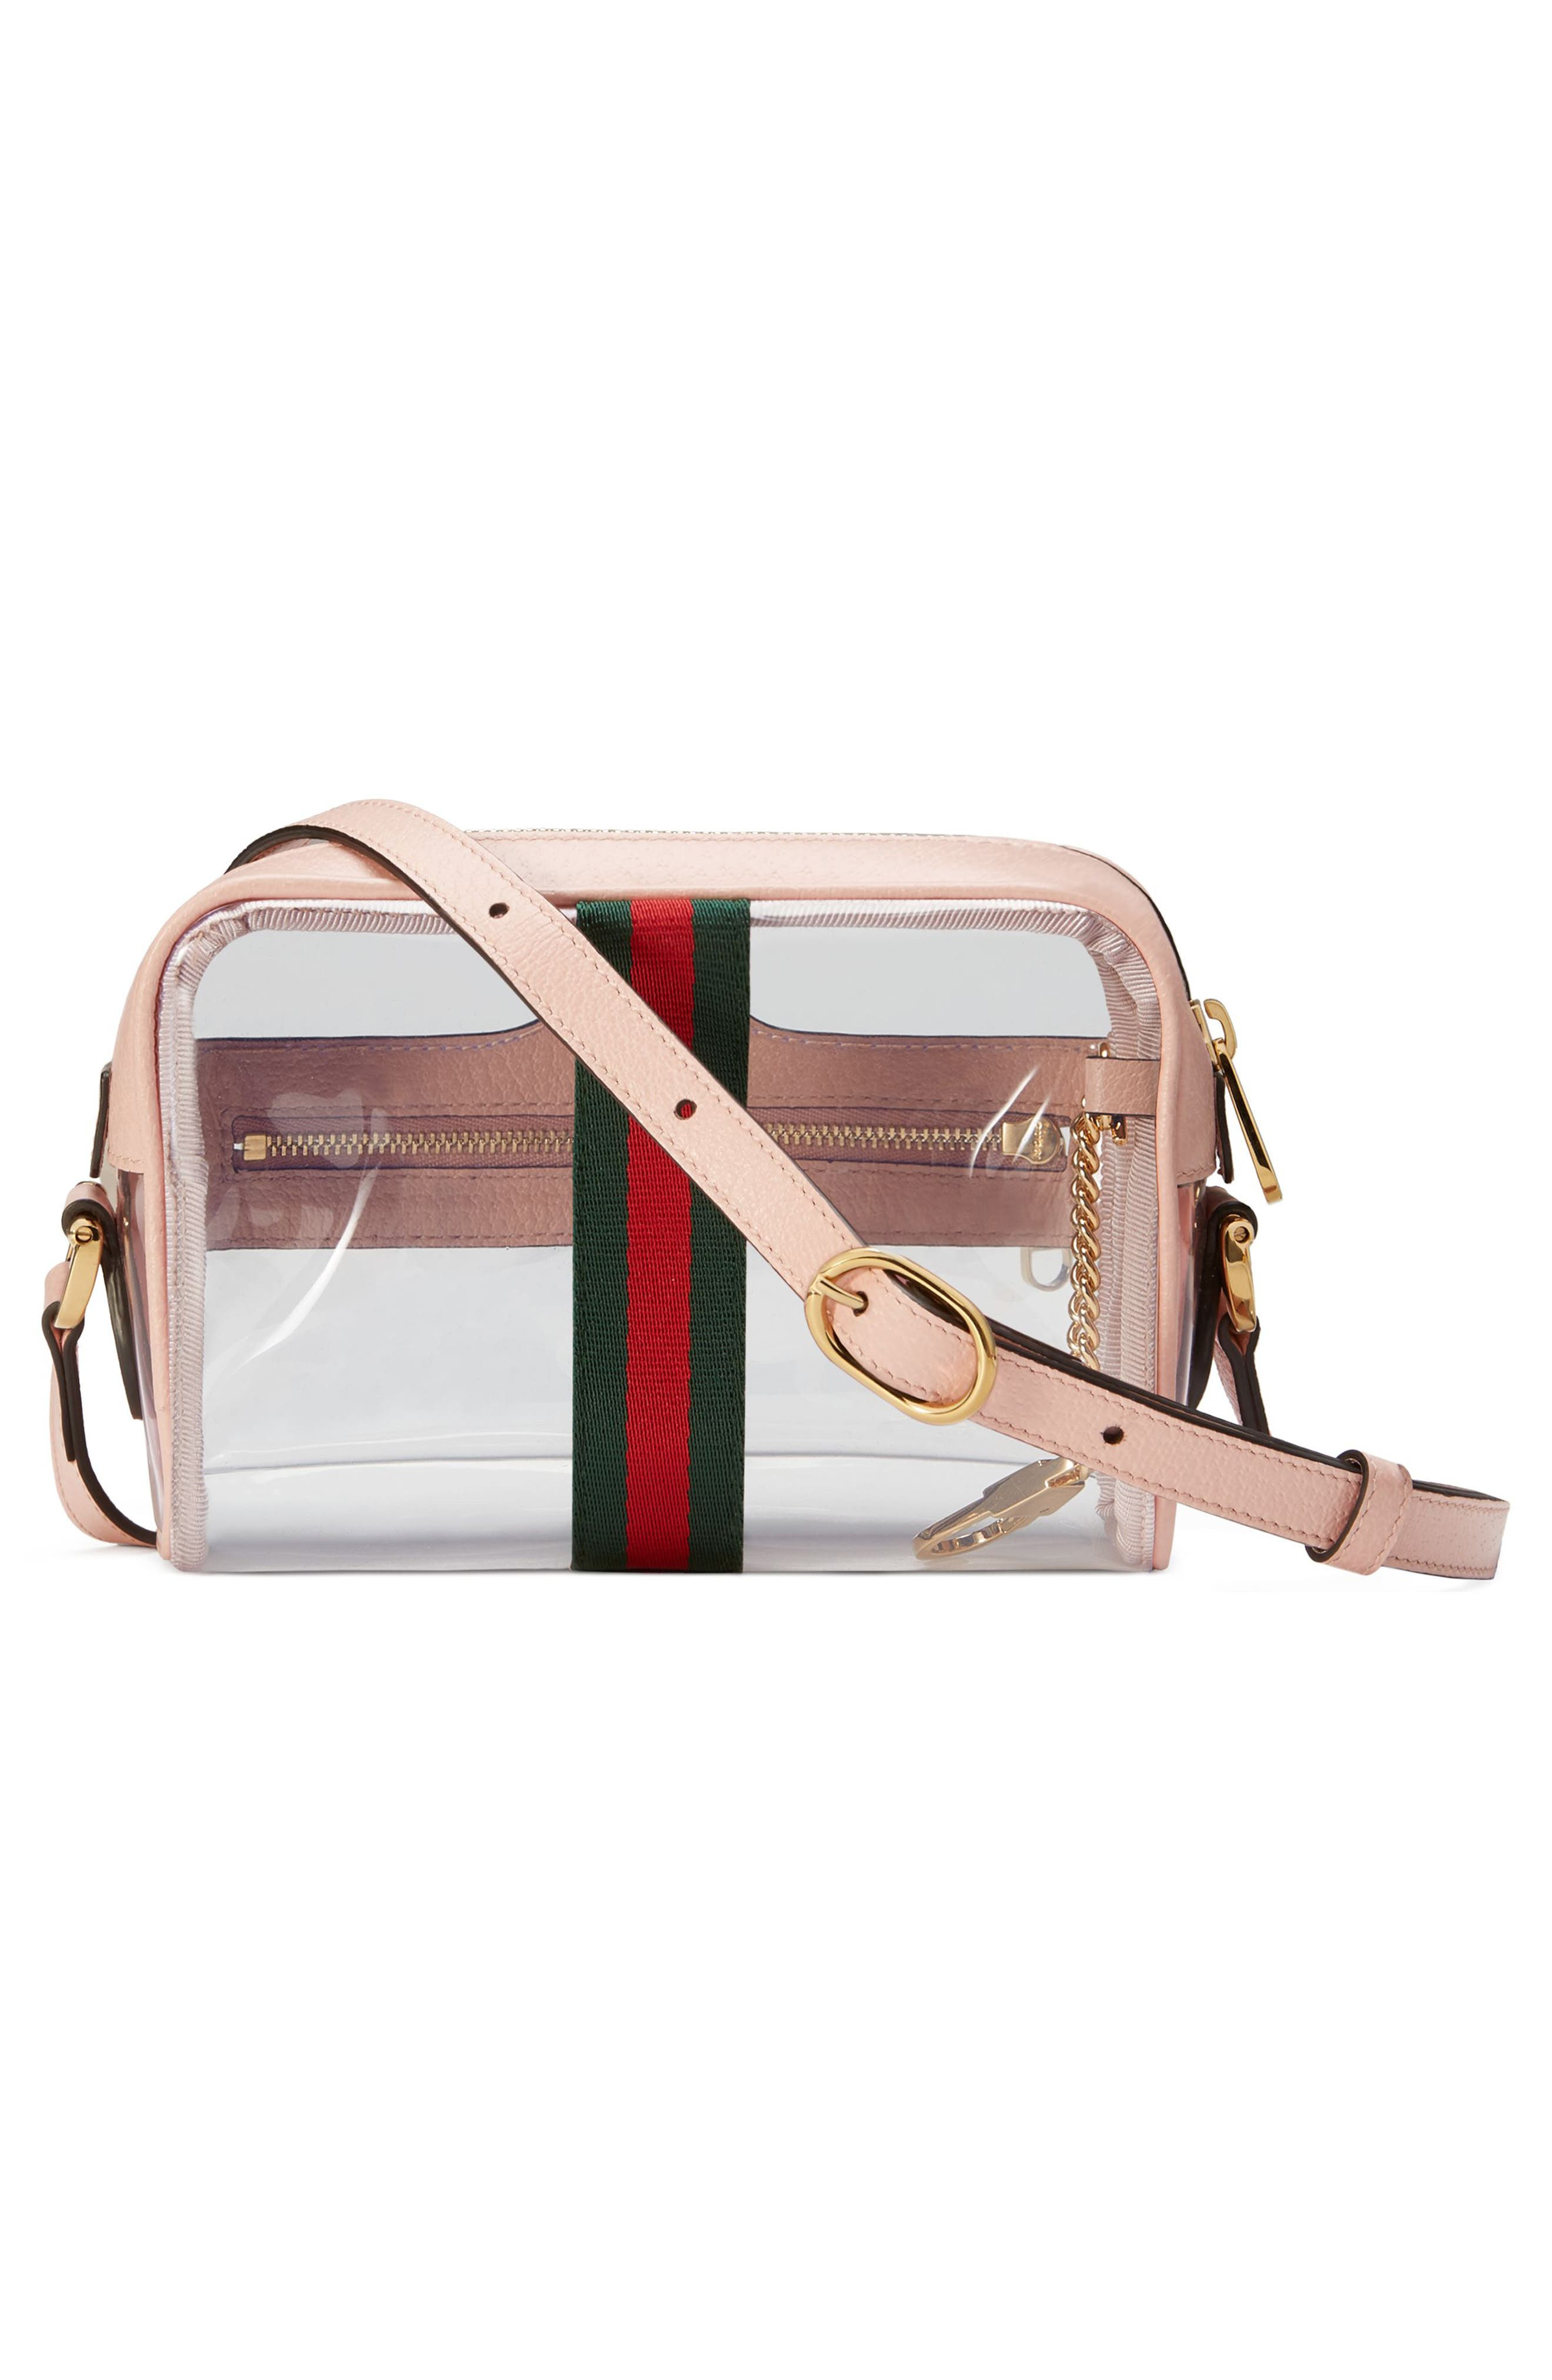 Mini Ophidia Transparent Convertible Bag,                             Alternate thumbnail 2, color,                             PINK/ PERFECT PINK/ VERT RED